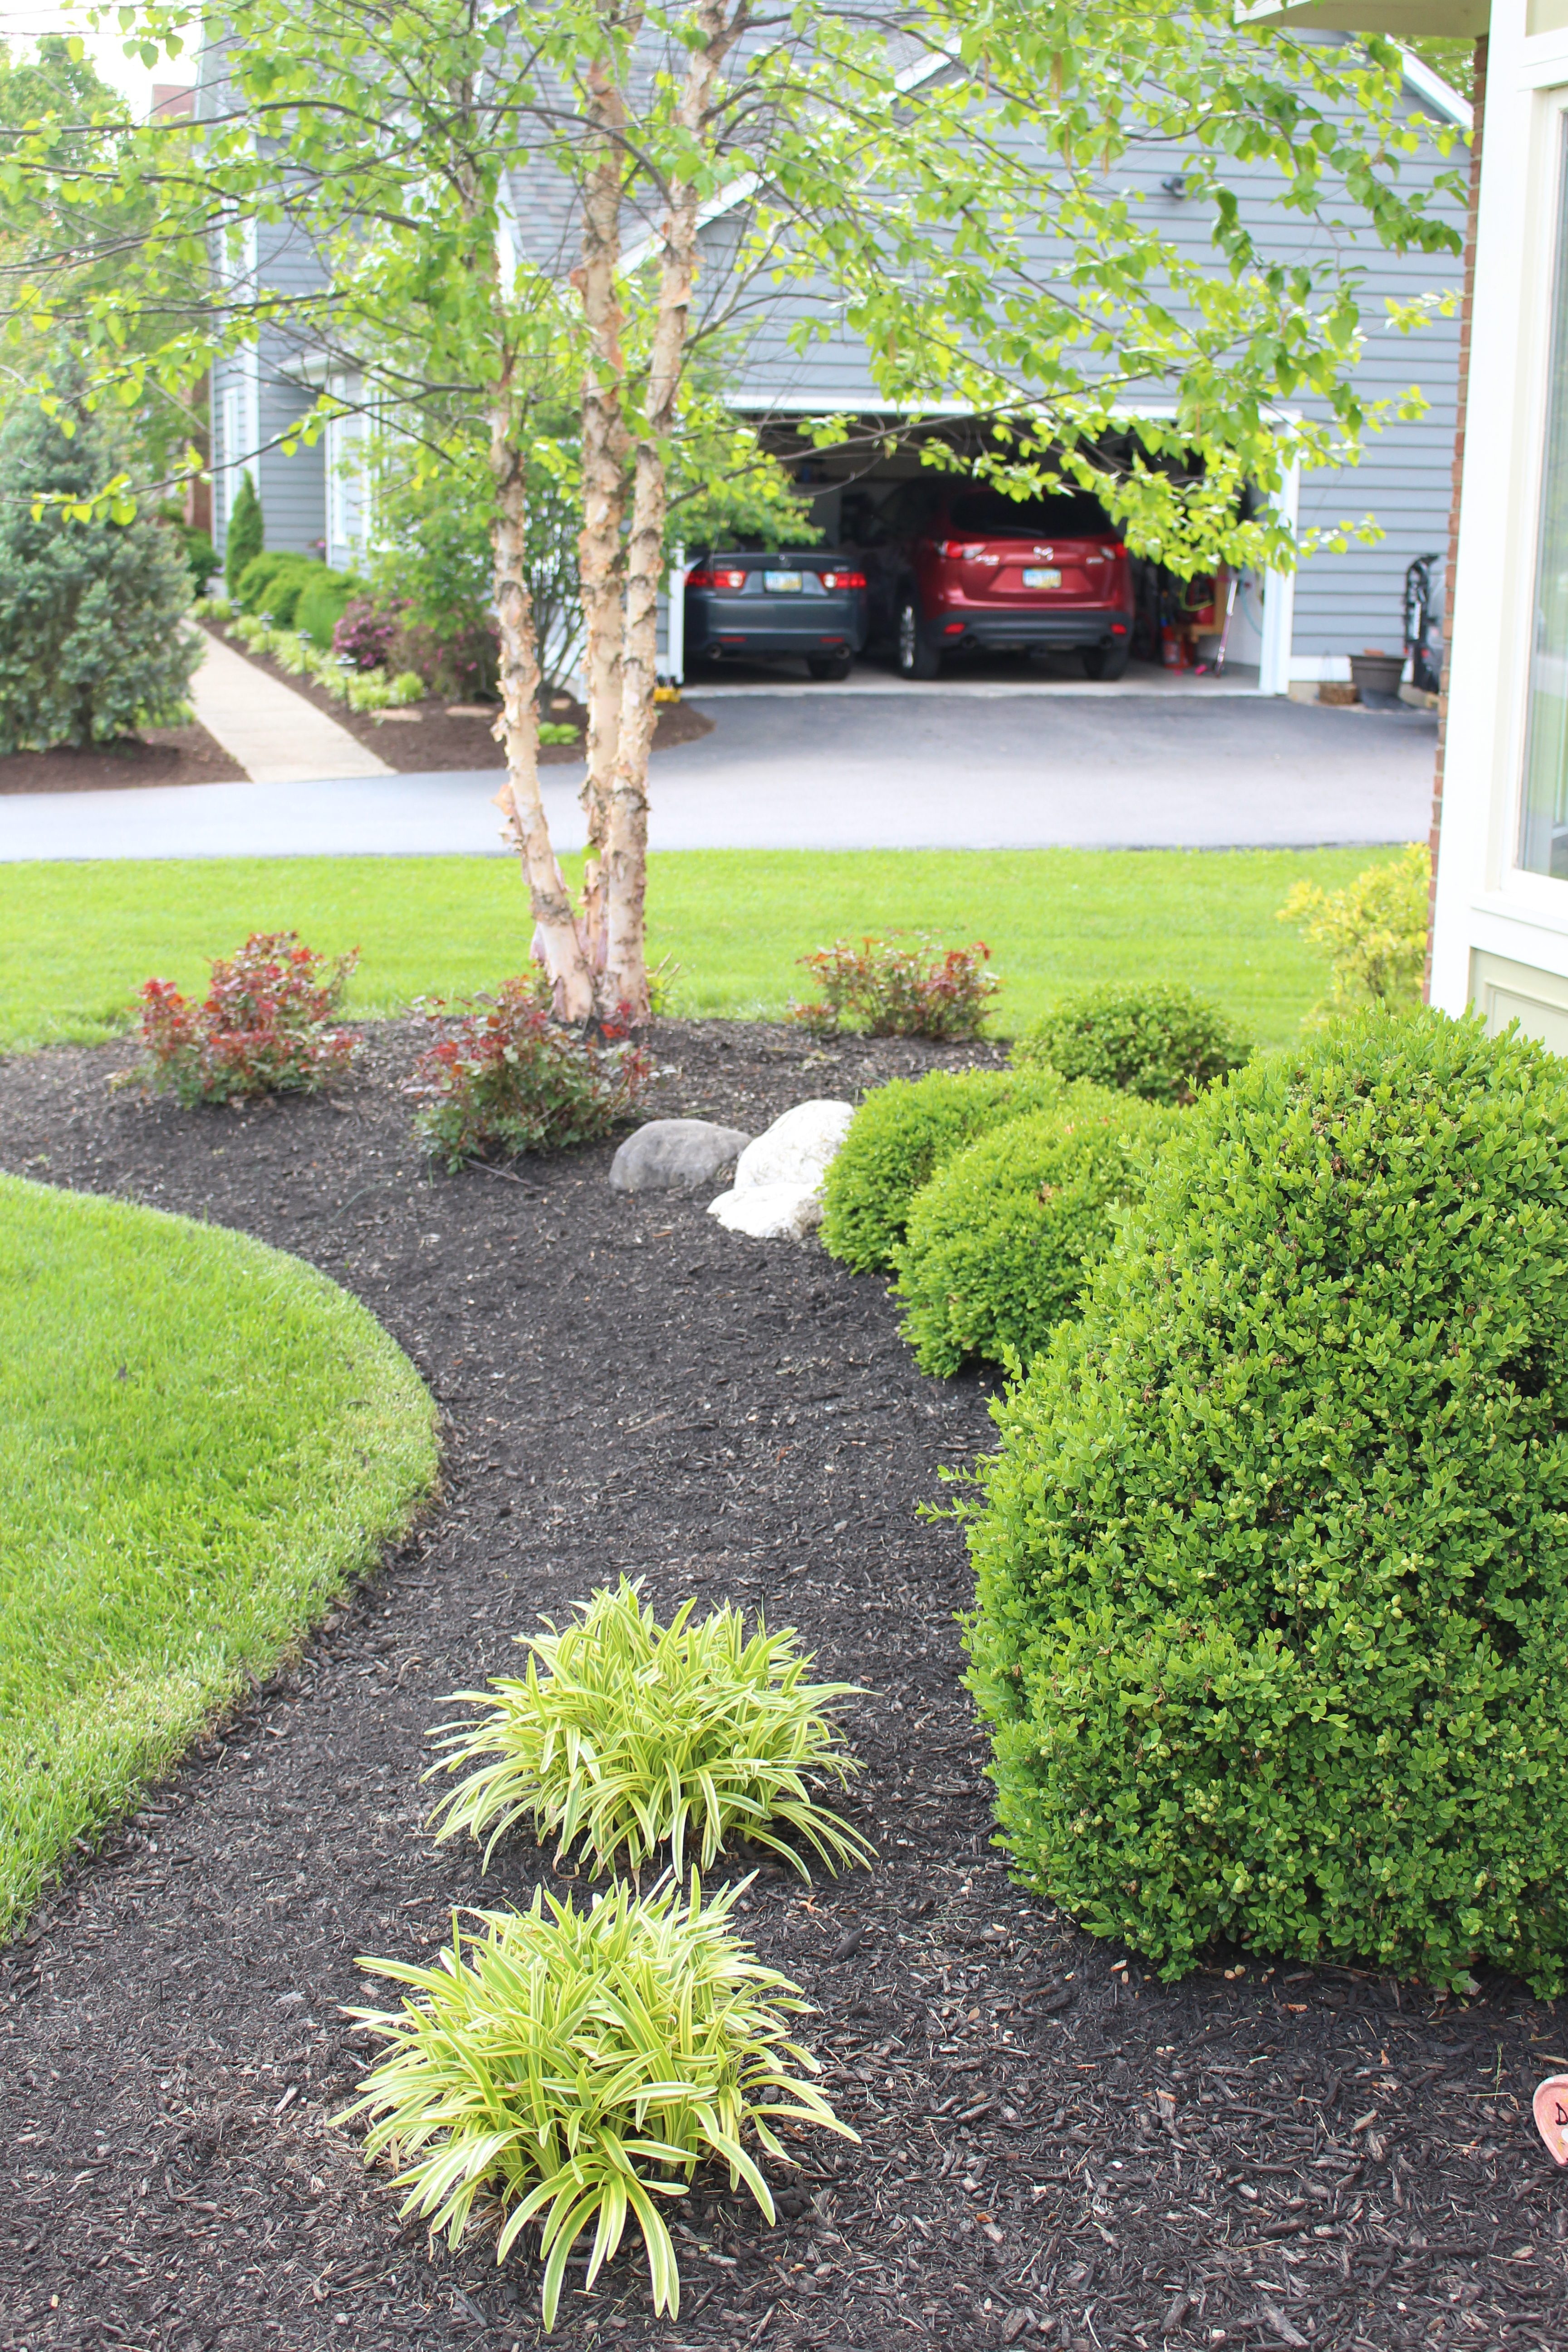 Landscape Lighting Areas by www.whitecottagehomeandliving.com